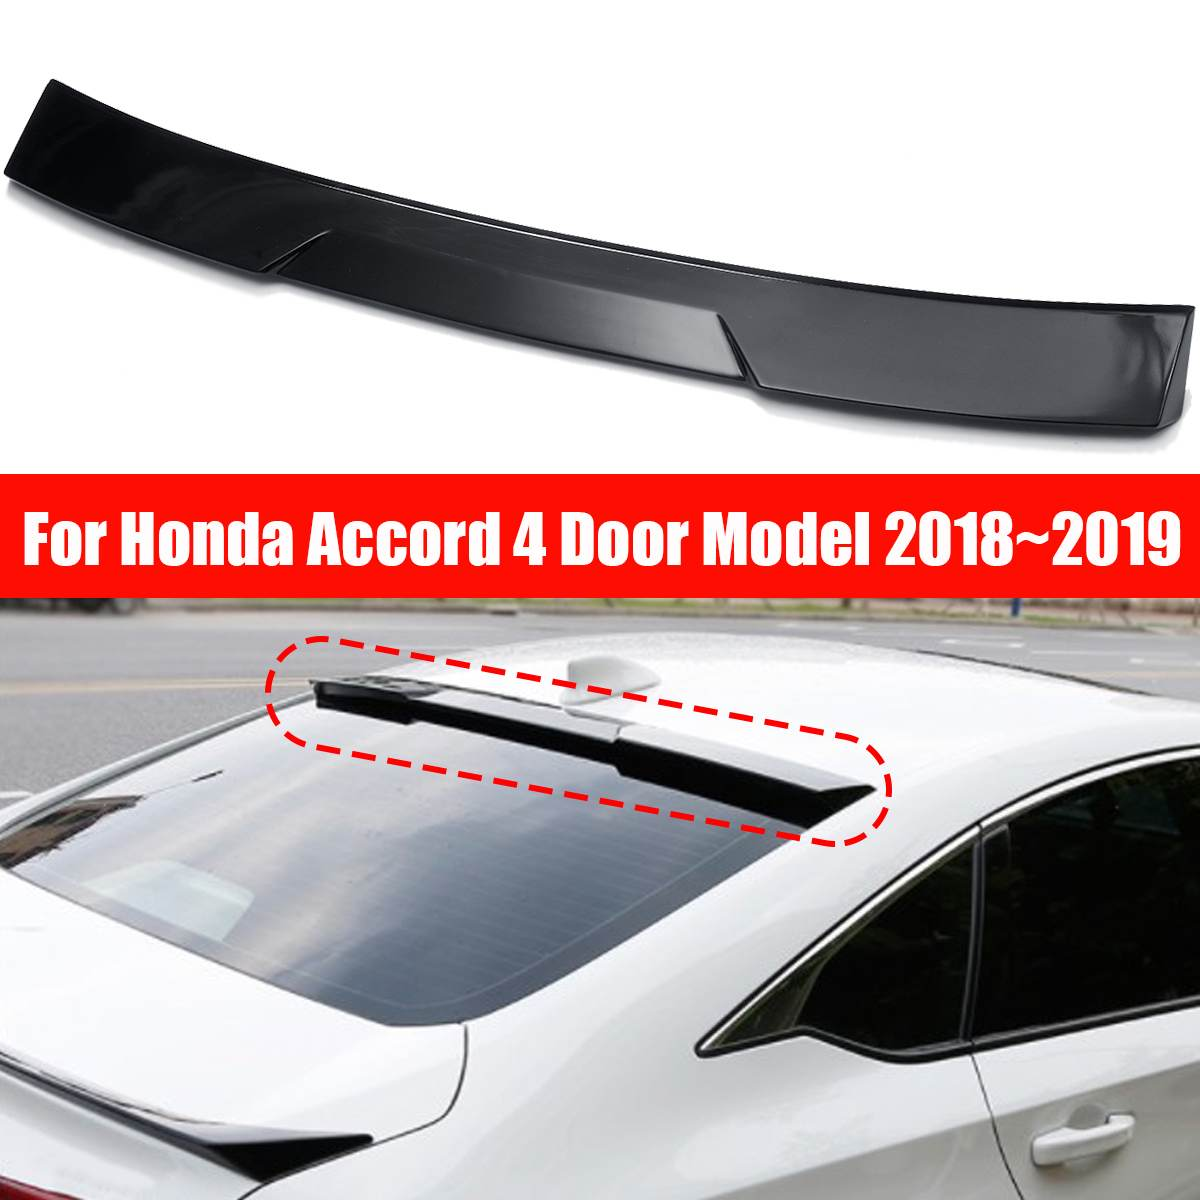 ABS Rear Window Visor Gloss Black Roof Spoiler for HONDA for ACCORD 10th Gen Sedan VIP 2018 2019 Car Exterior Parts